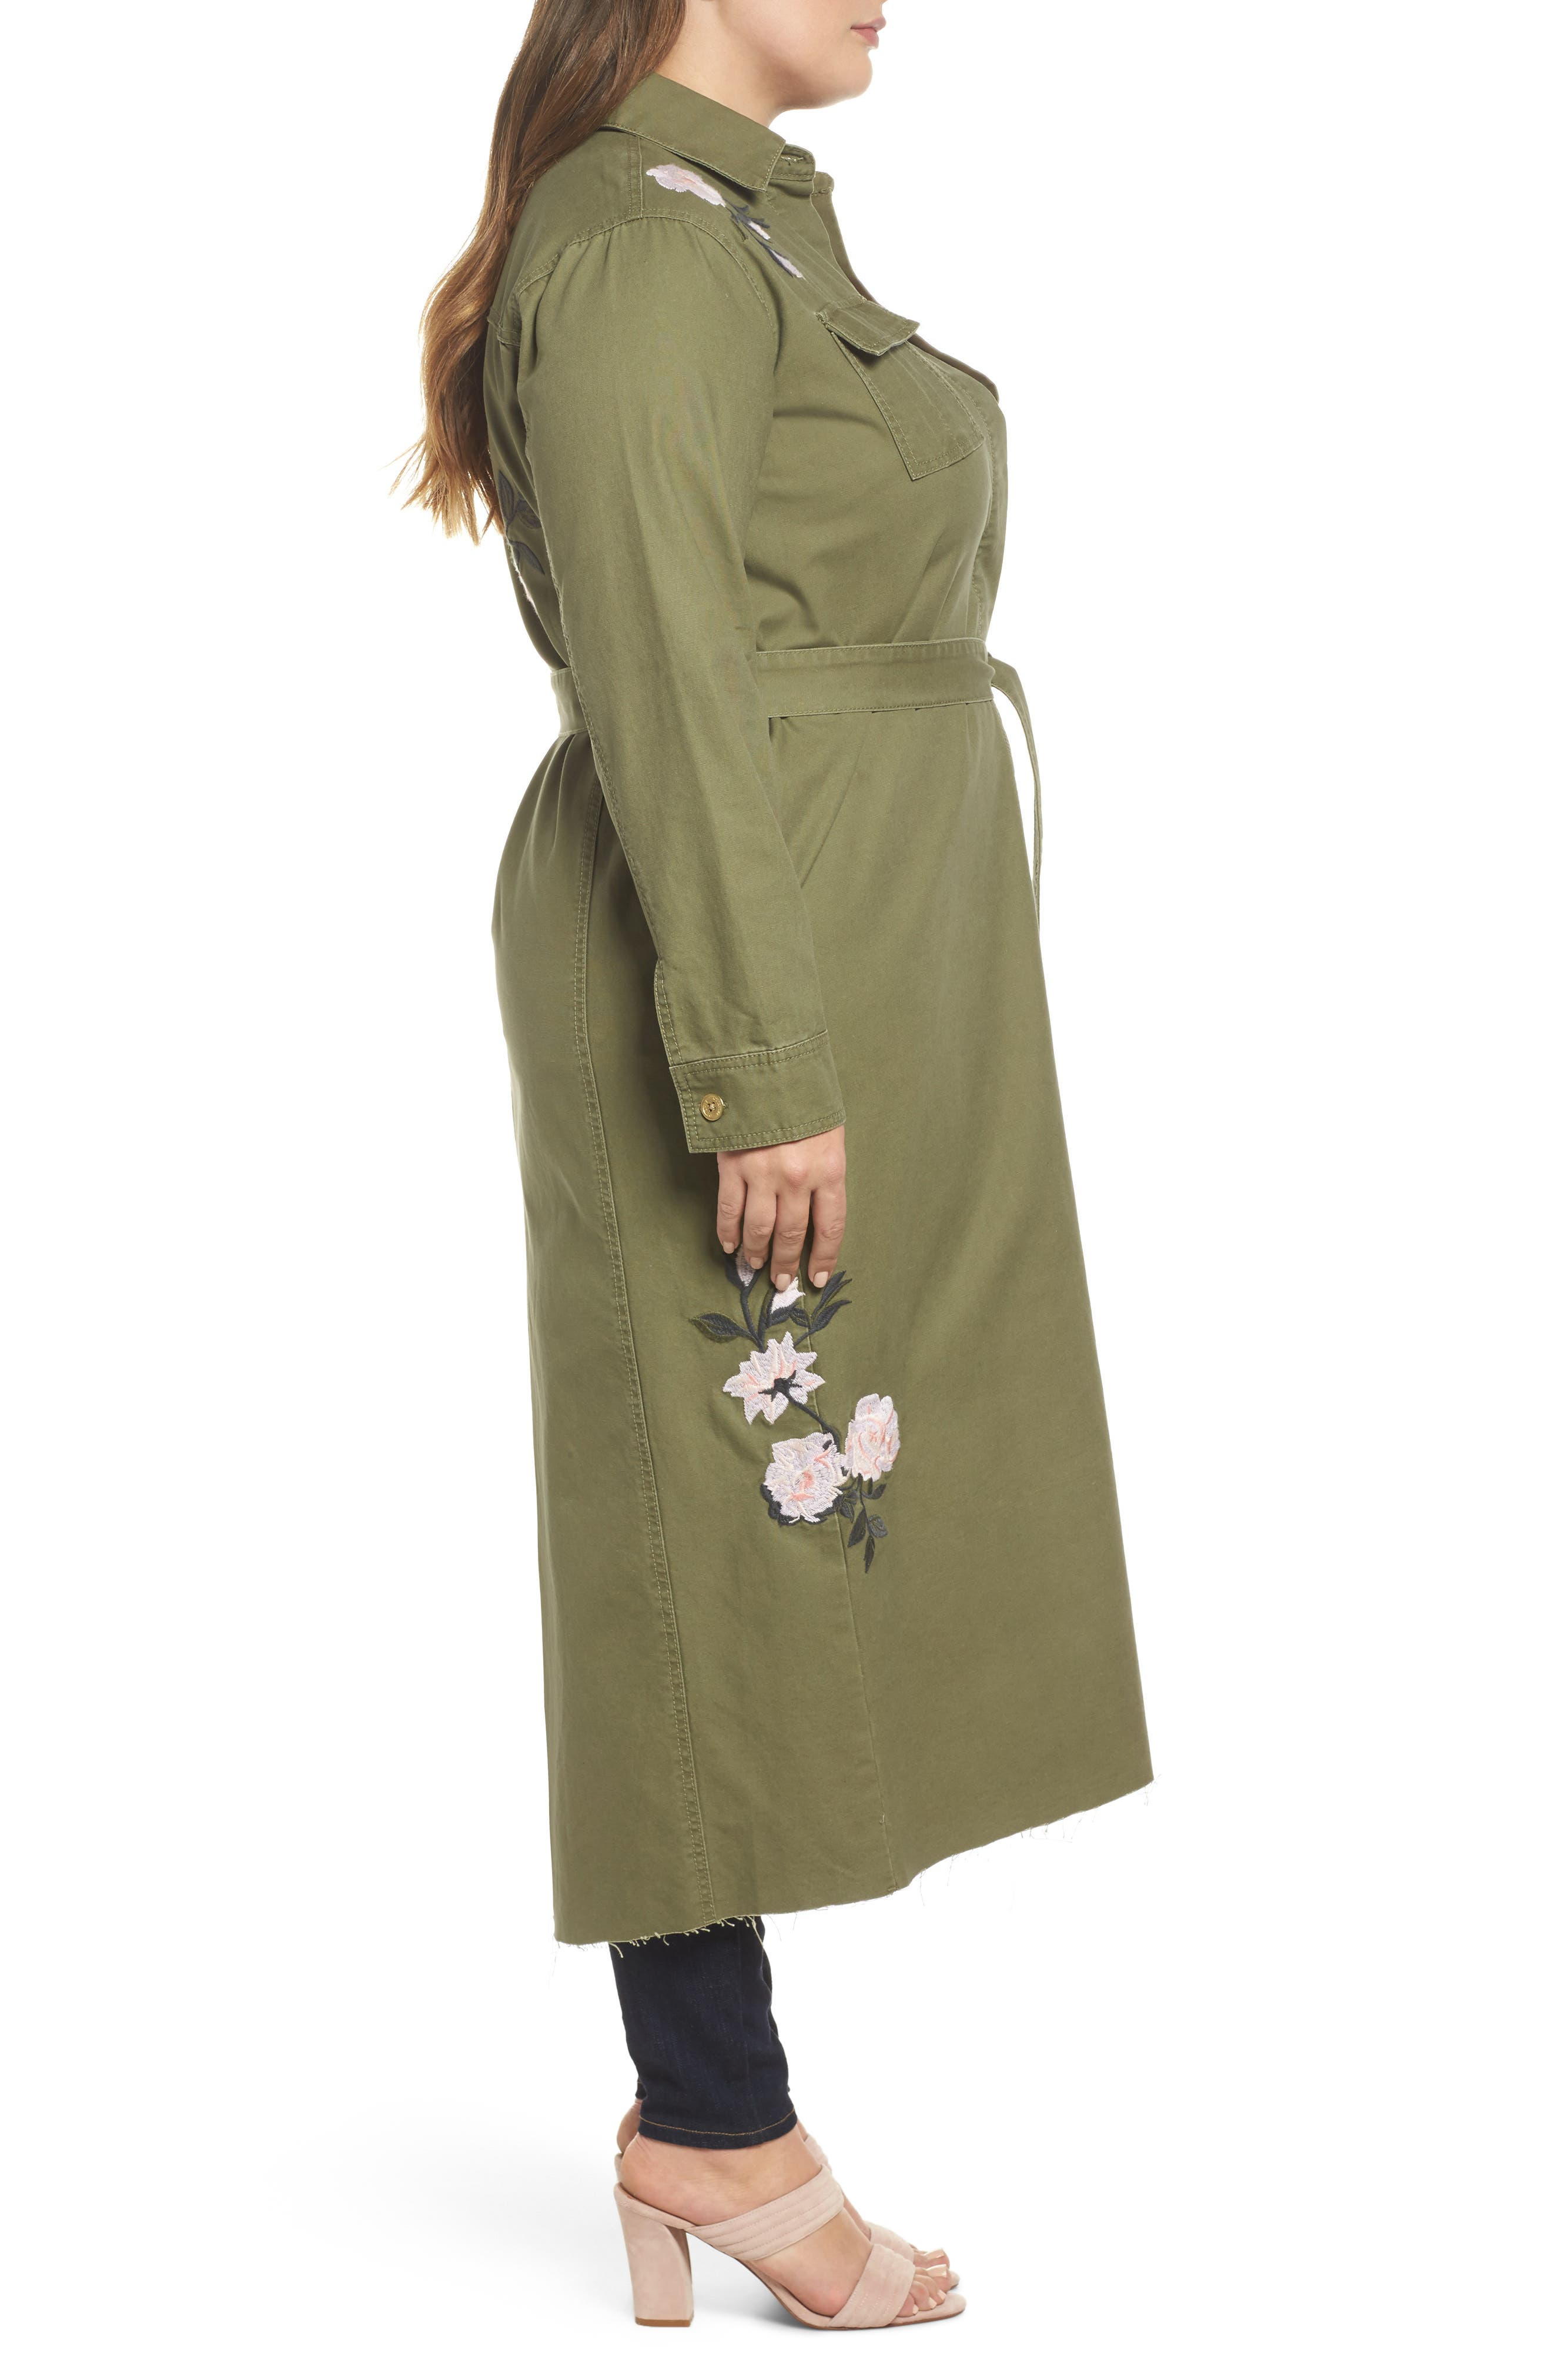 Embroidered Army Duster,                             Alternate thumbnail 3, color,                             Army